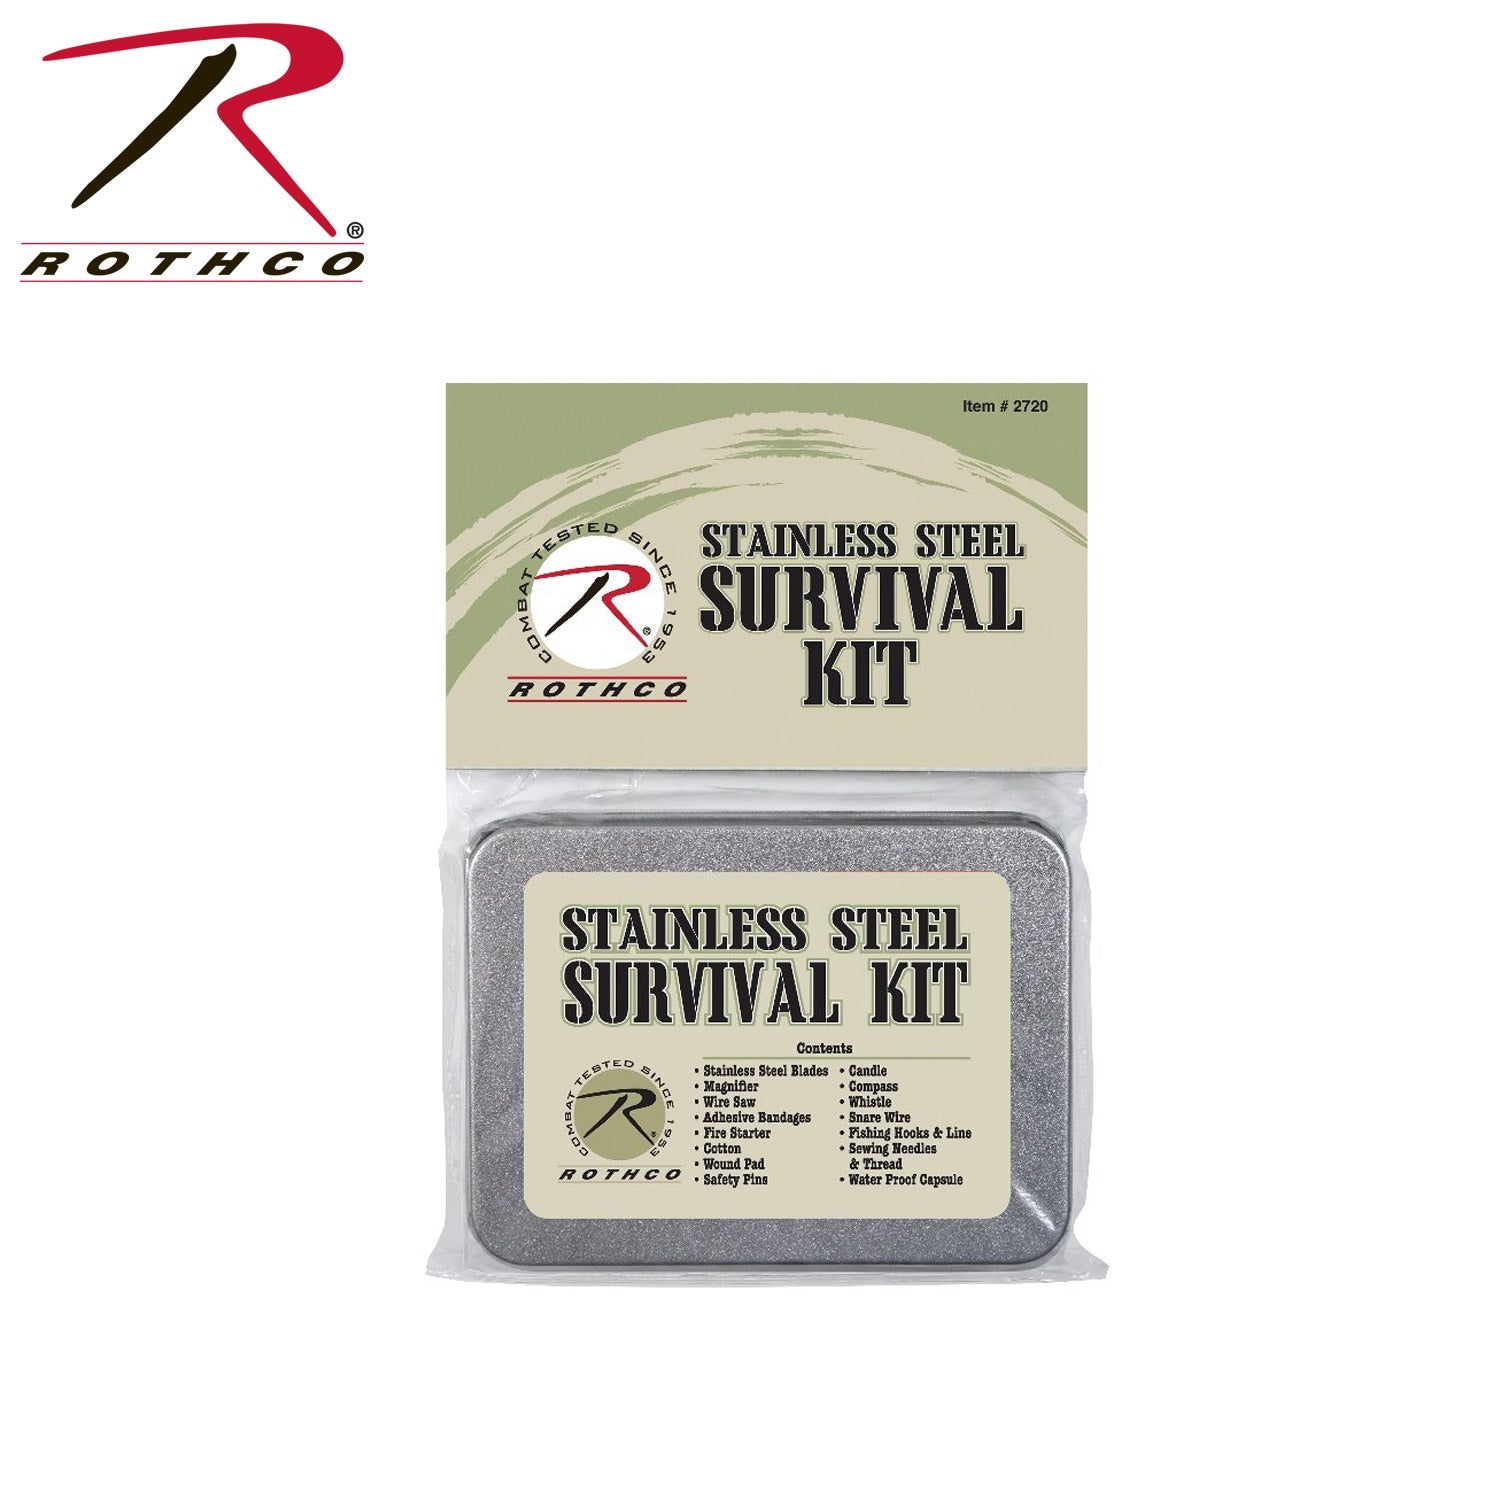 Rothco Survival Kit